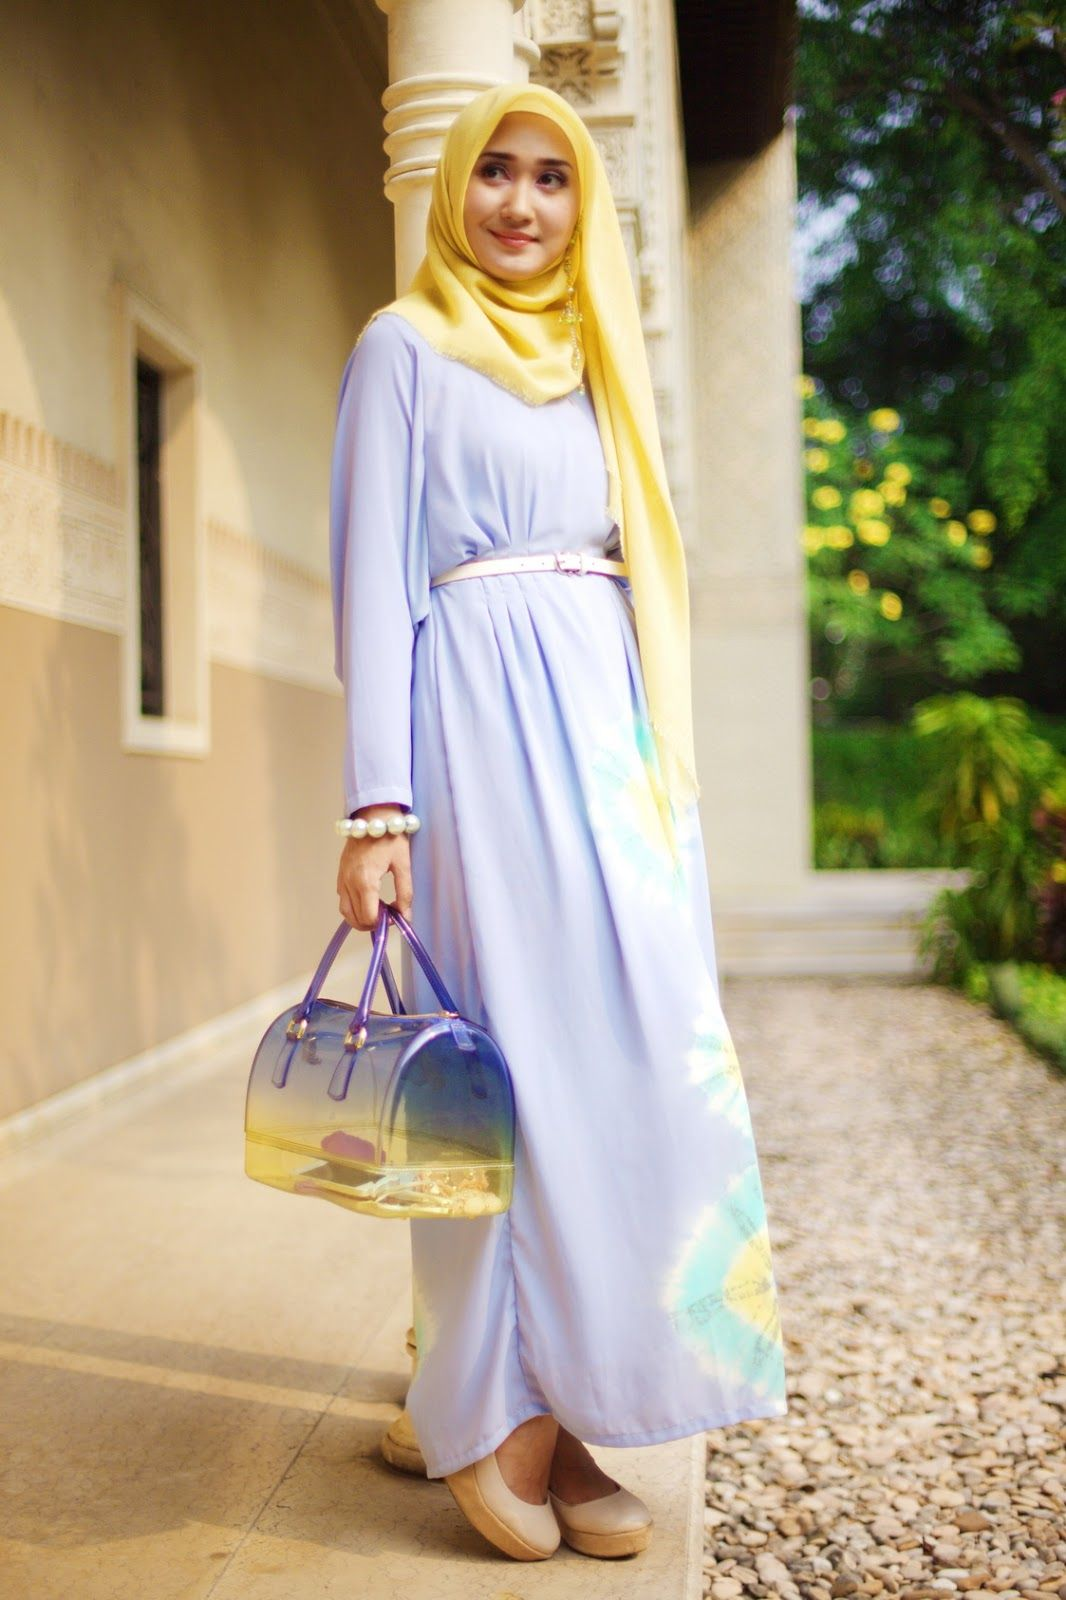 The Bluebell Dian Pelangi DP By Dian Pinterest Sweet The